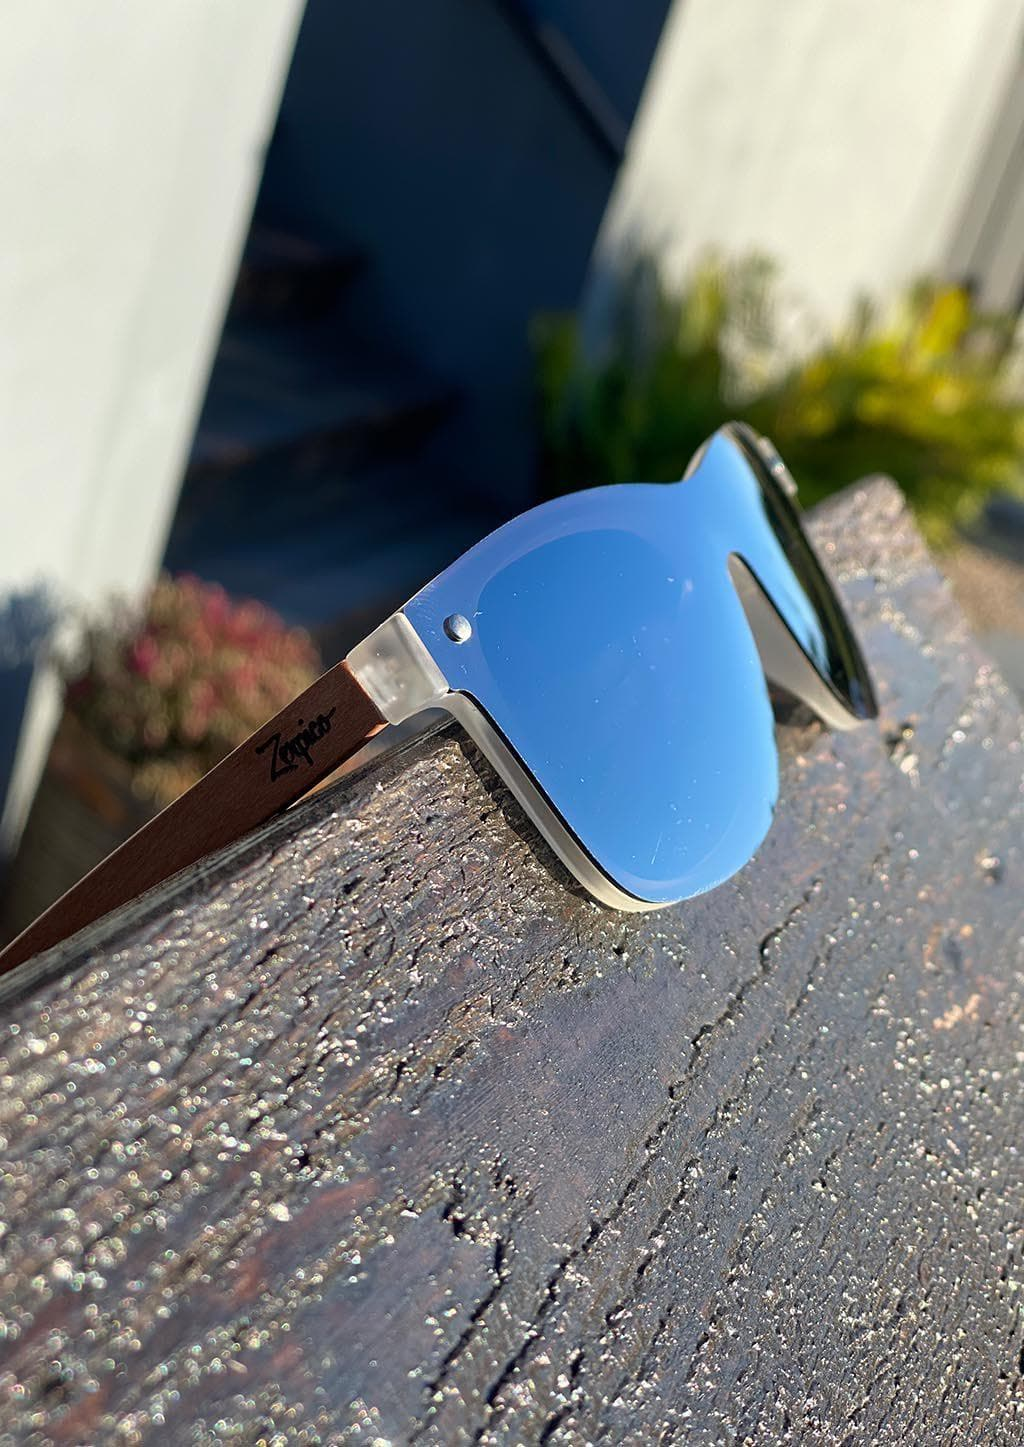 Eyewood tomorrow is our modern cool take on classic models. This is Perseus with silver mirror lenses. Nice wooden sunglasses outside in the sun in Sweden.